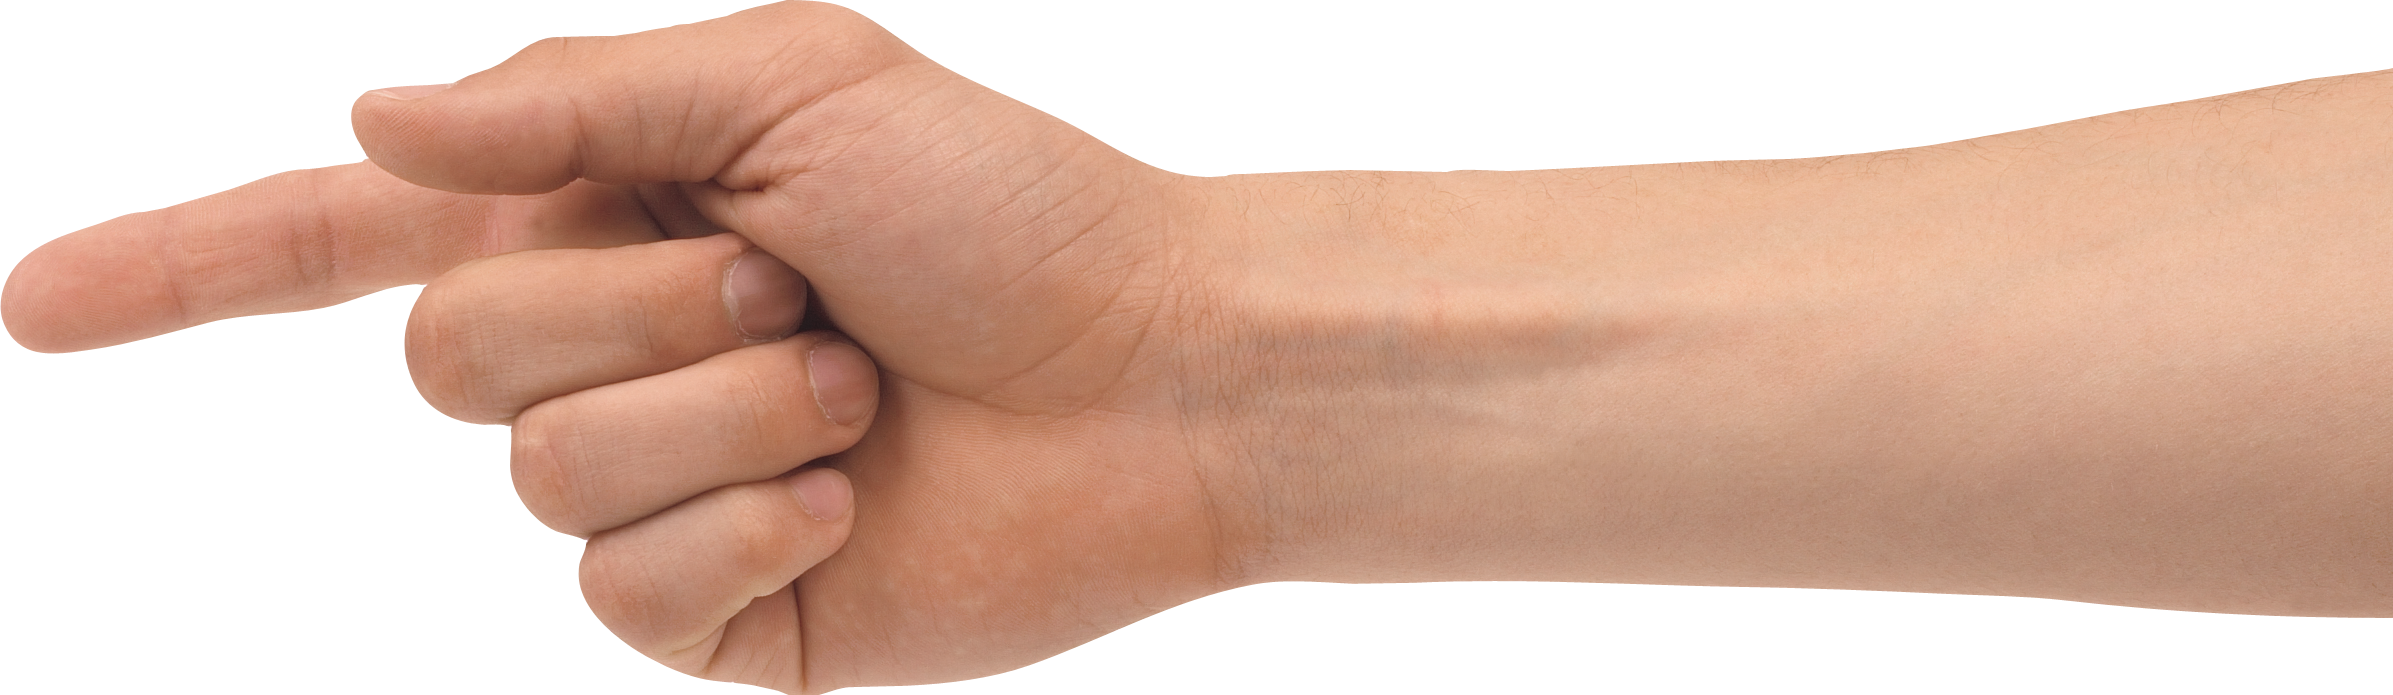 Fingers clipart single finger. One hand png image